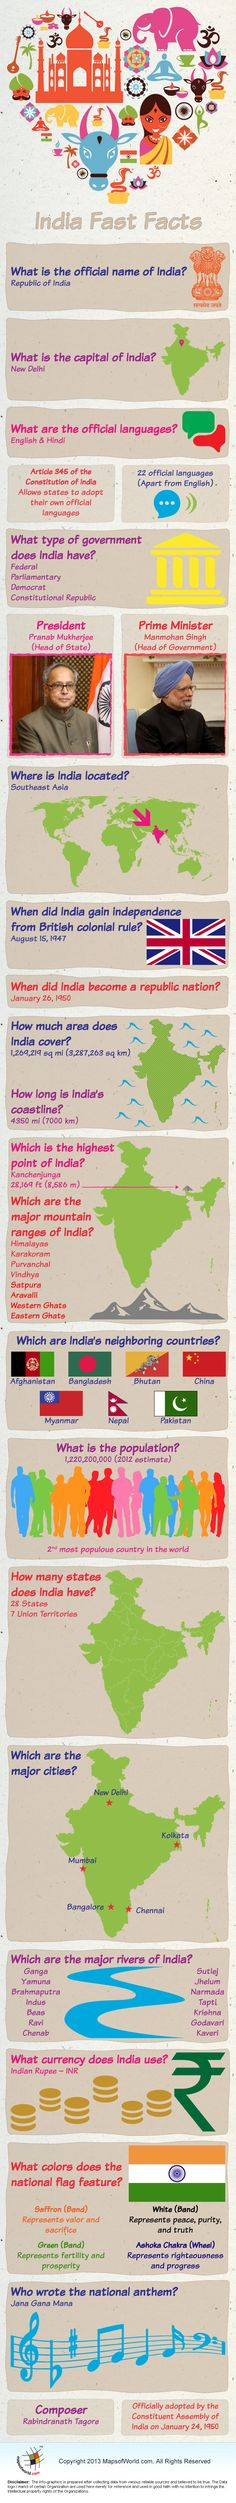 Nice blogpost about Infographic of India Facts by mowpages